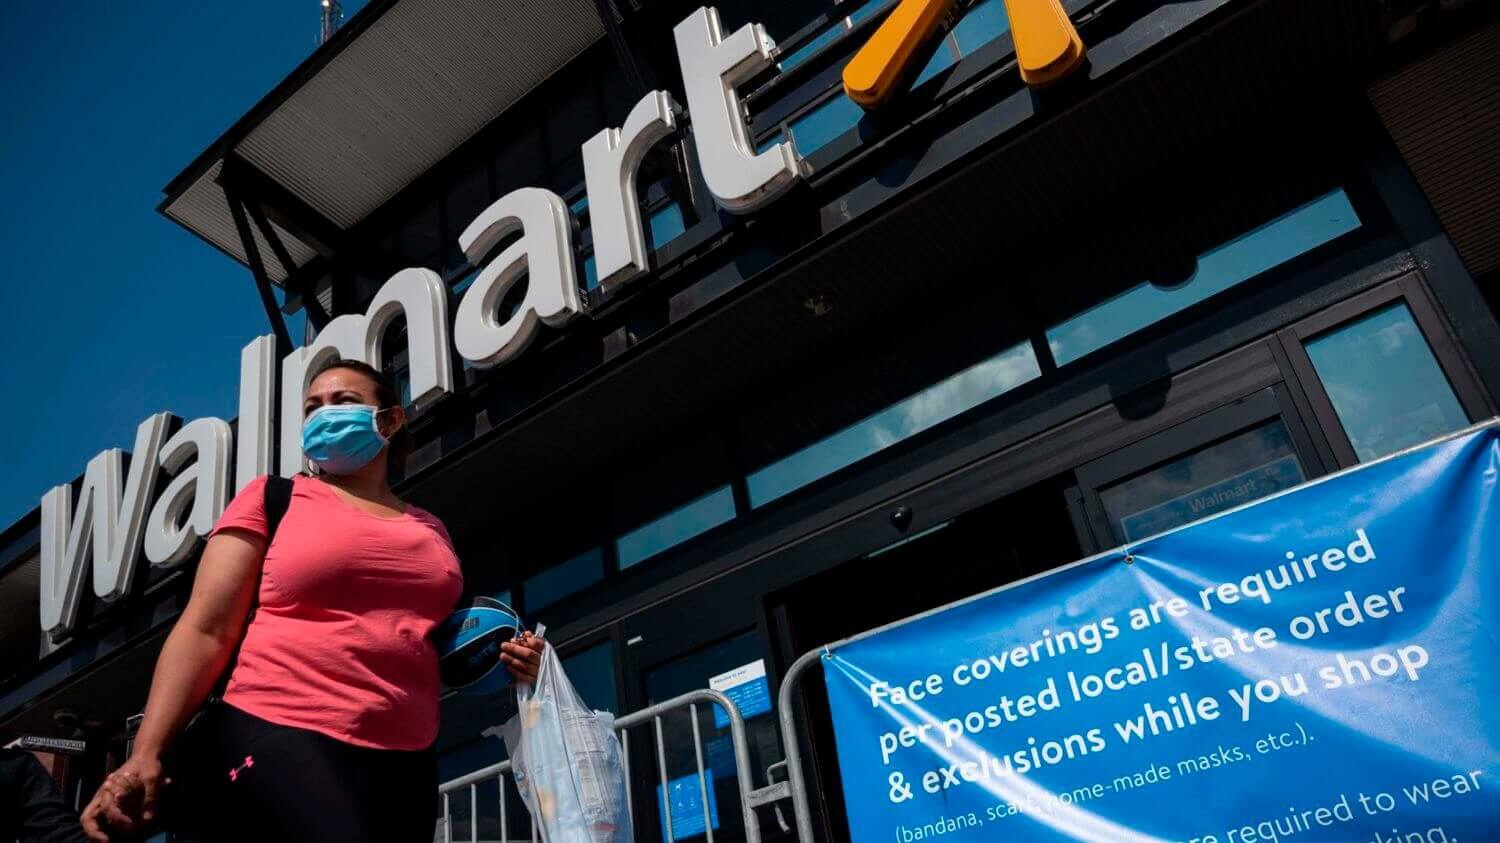 Walmart's Mass Layoffs Could Be the Canary in the Coal Mine